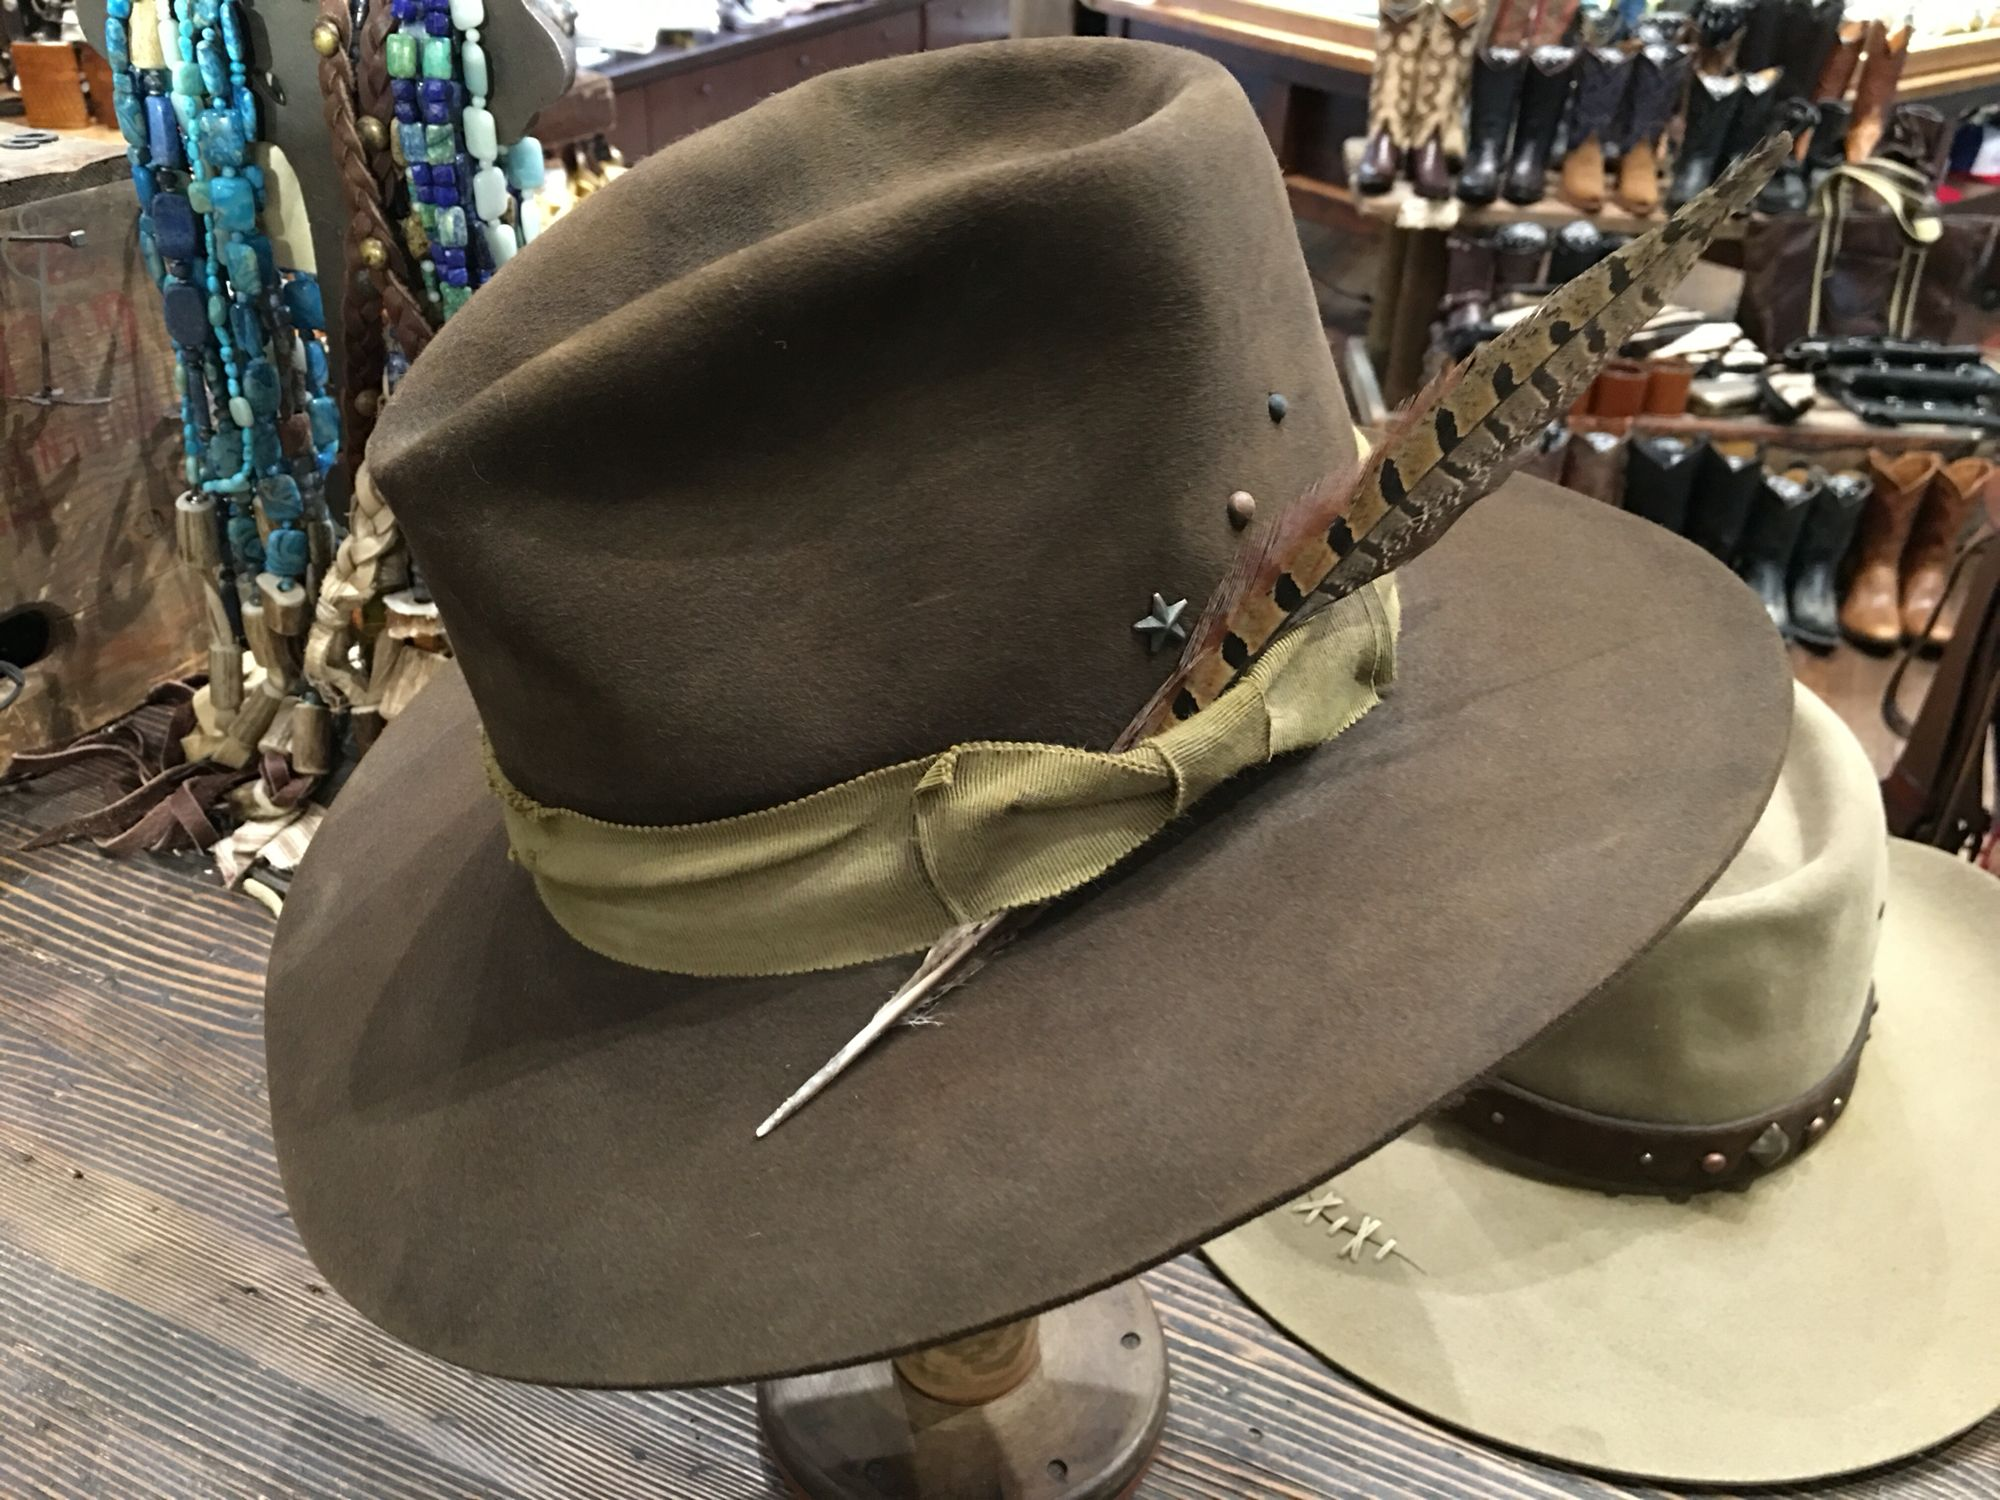 33c3227e5 Kemo sabe grit cow hair phone purse in 2019 | headwear | Dress hats ...